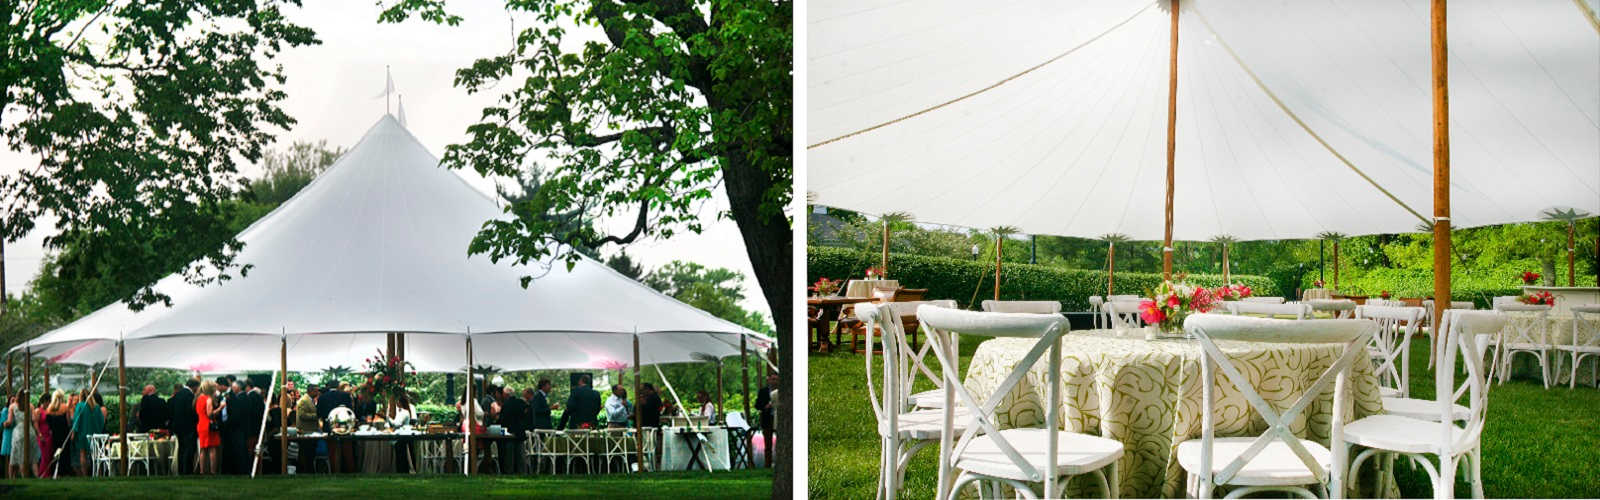 Where to rent Chiavari chairs in Central Kentucky